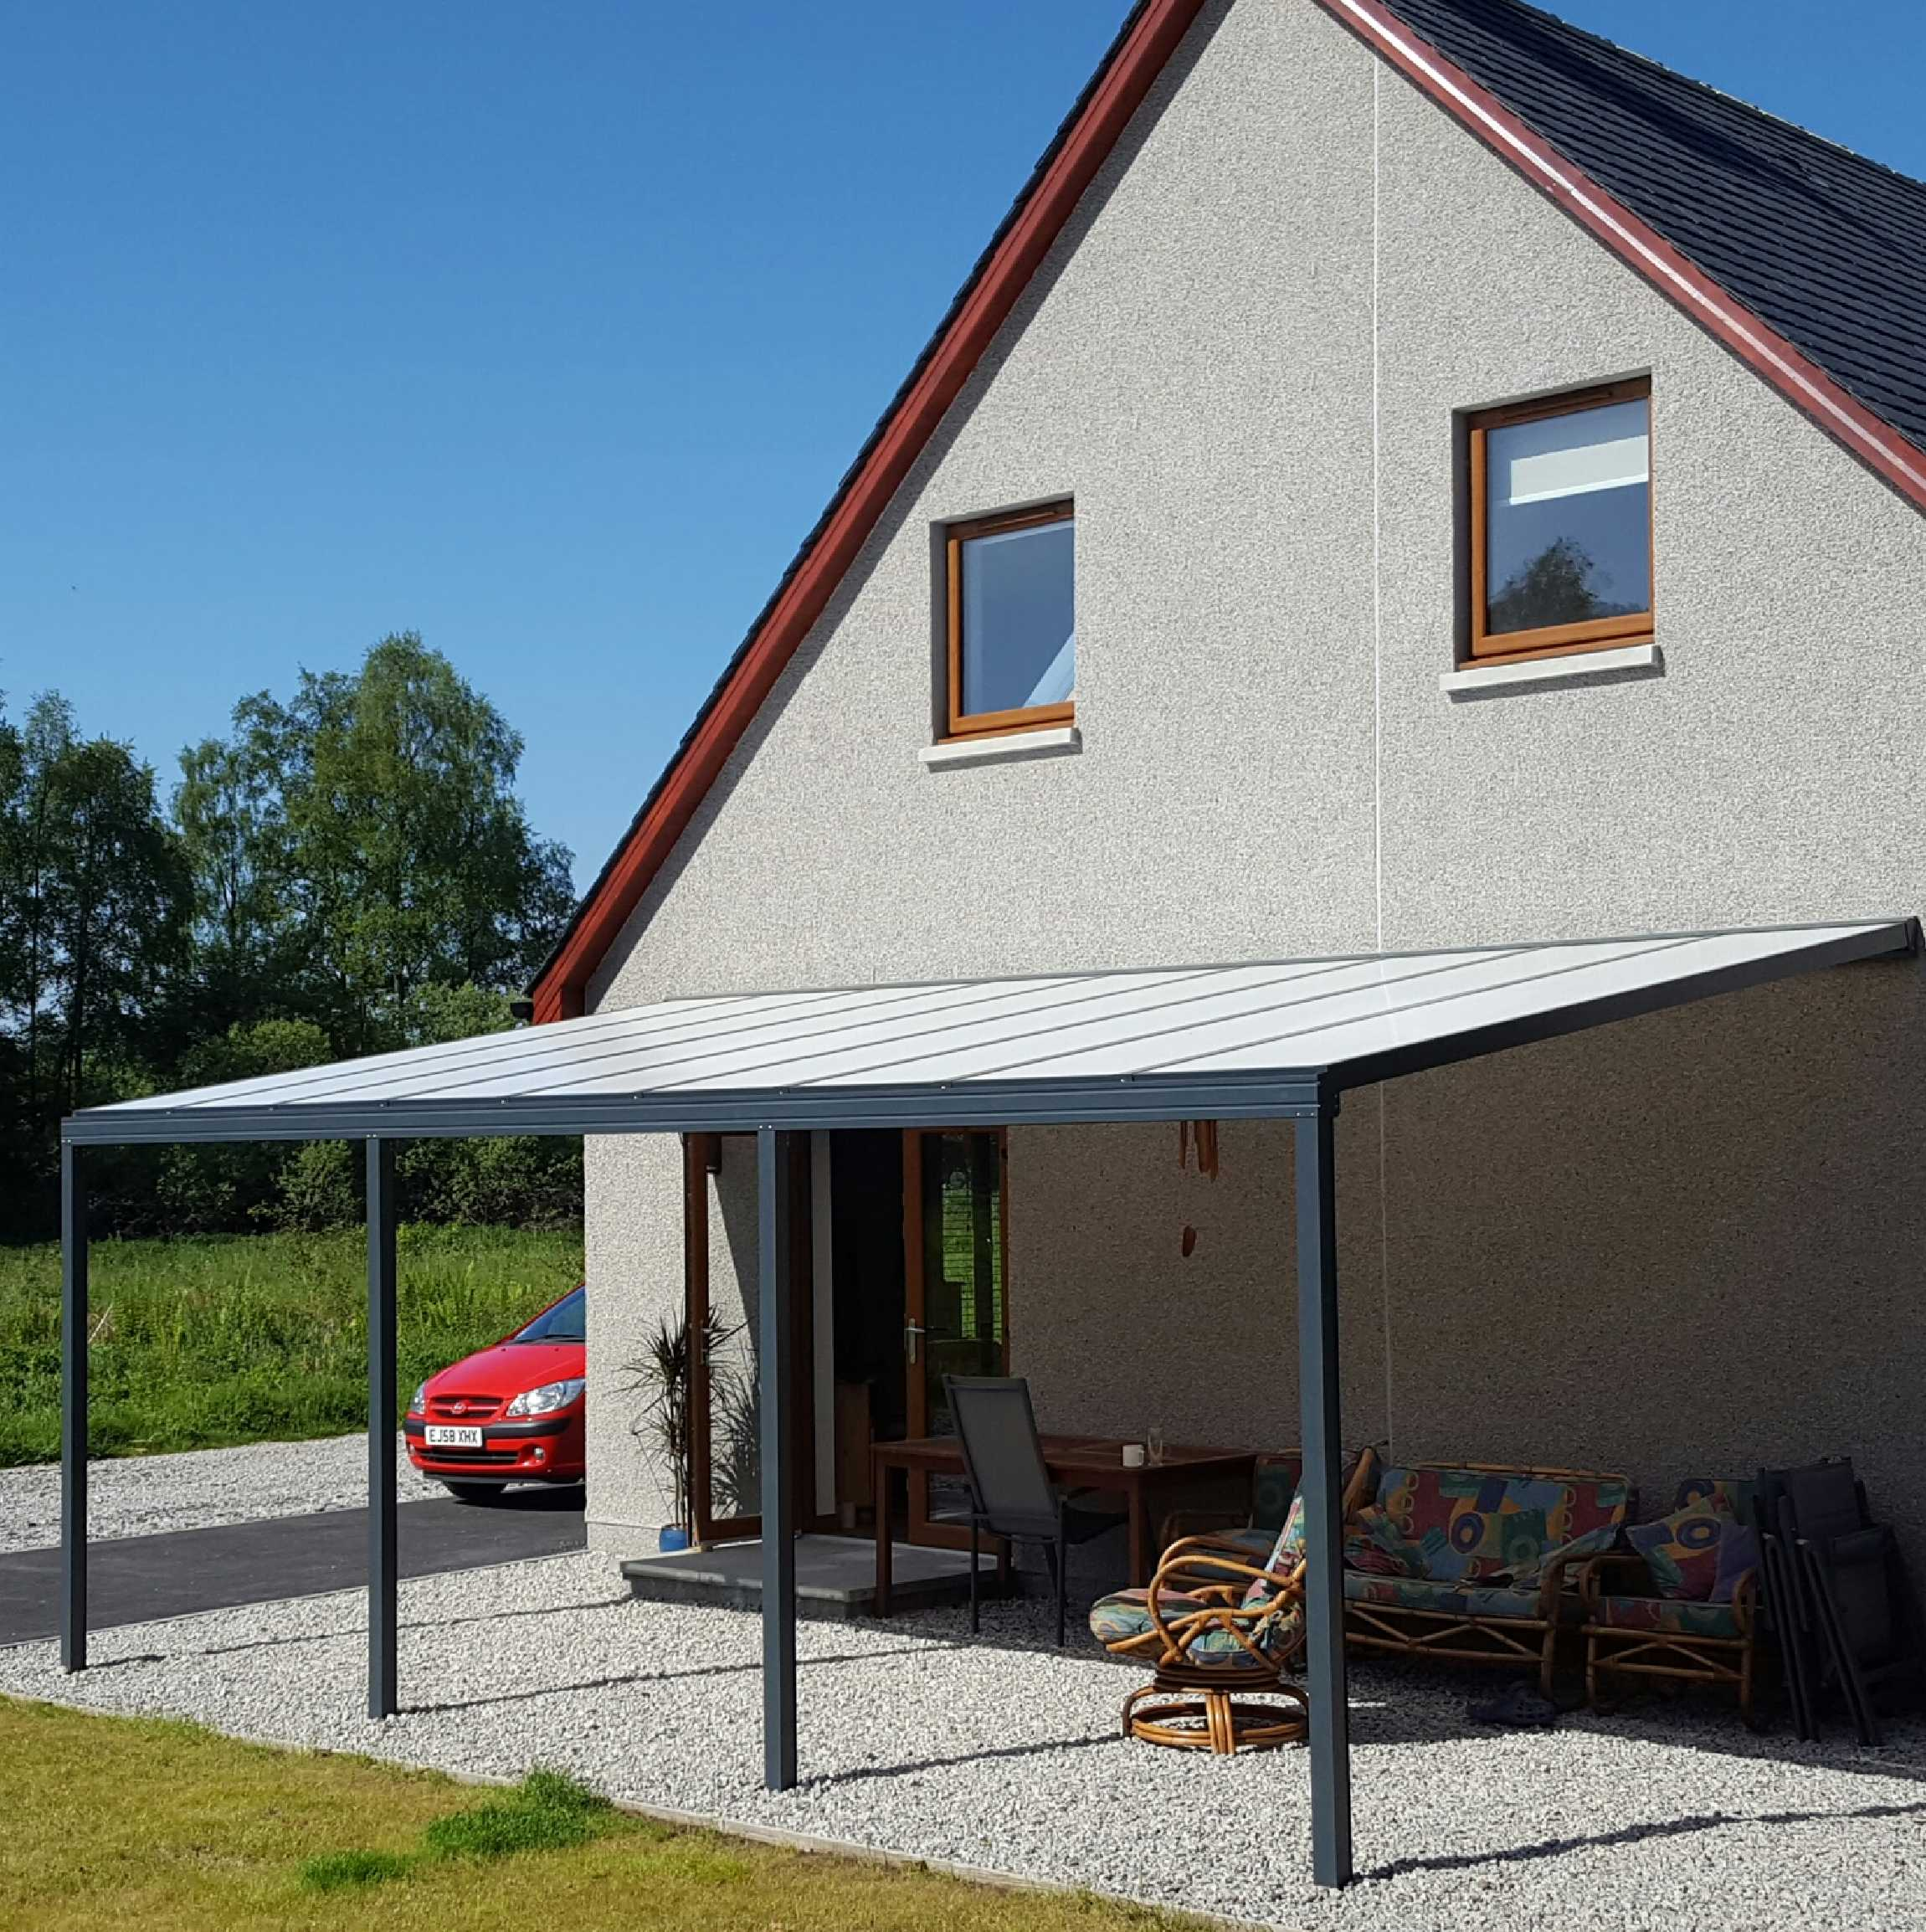 Great selection of Omega Smart Lean-To Canopy, Anthracite Grey, 16mm Polycarbonate Glazing - 10.6m (W) x 3.0m (P), (5) Supporting Posts